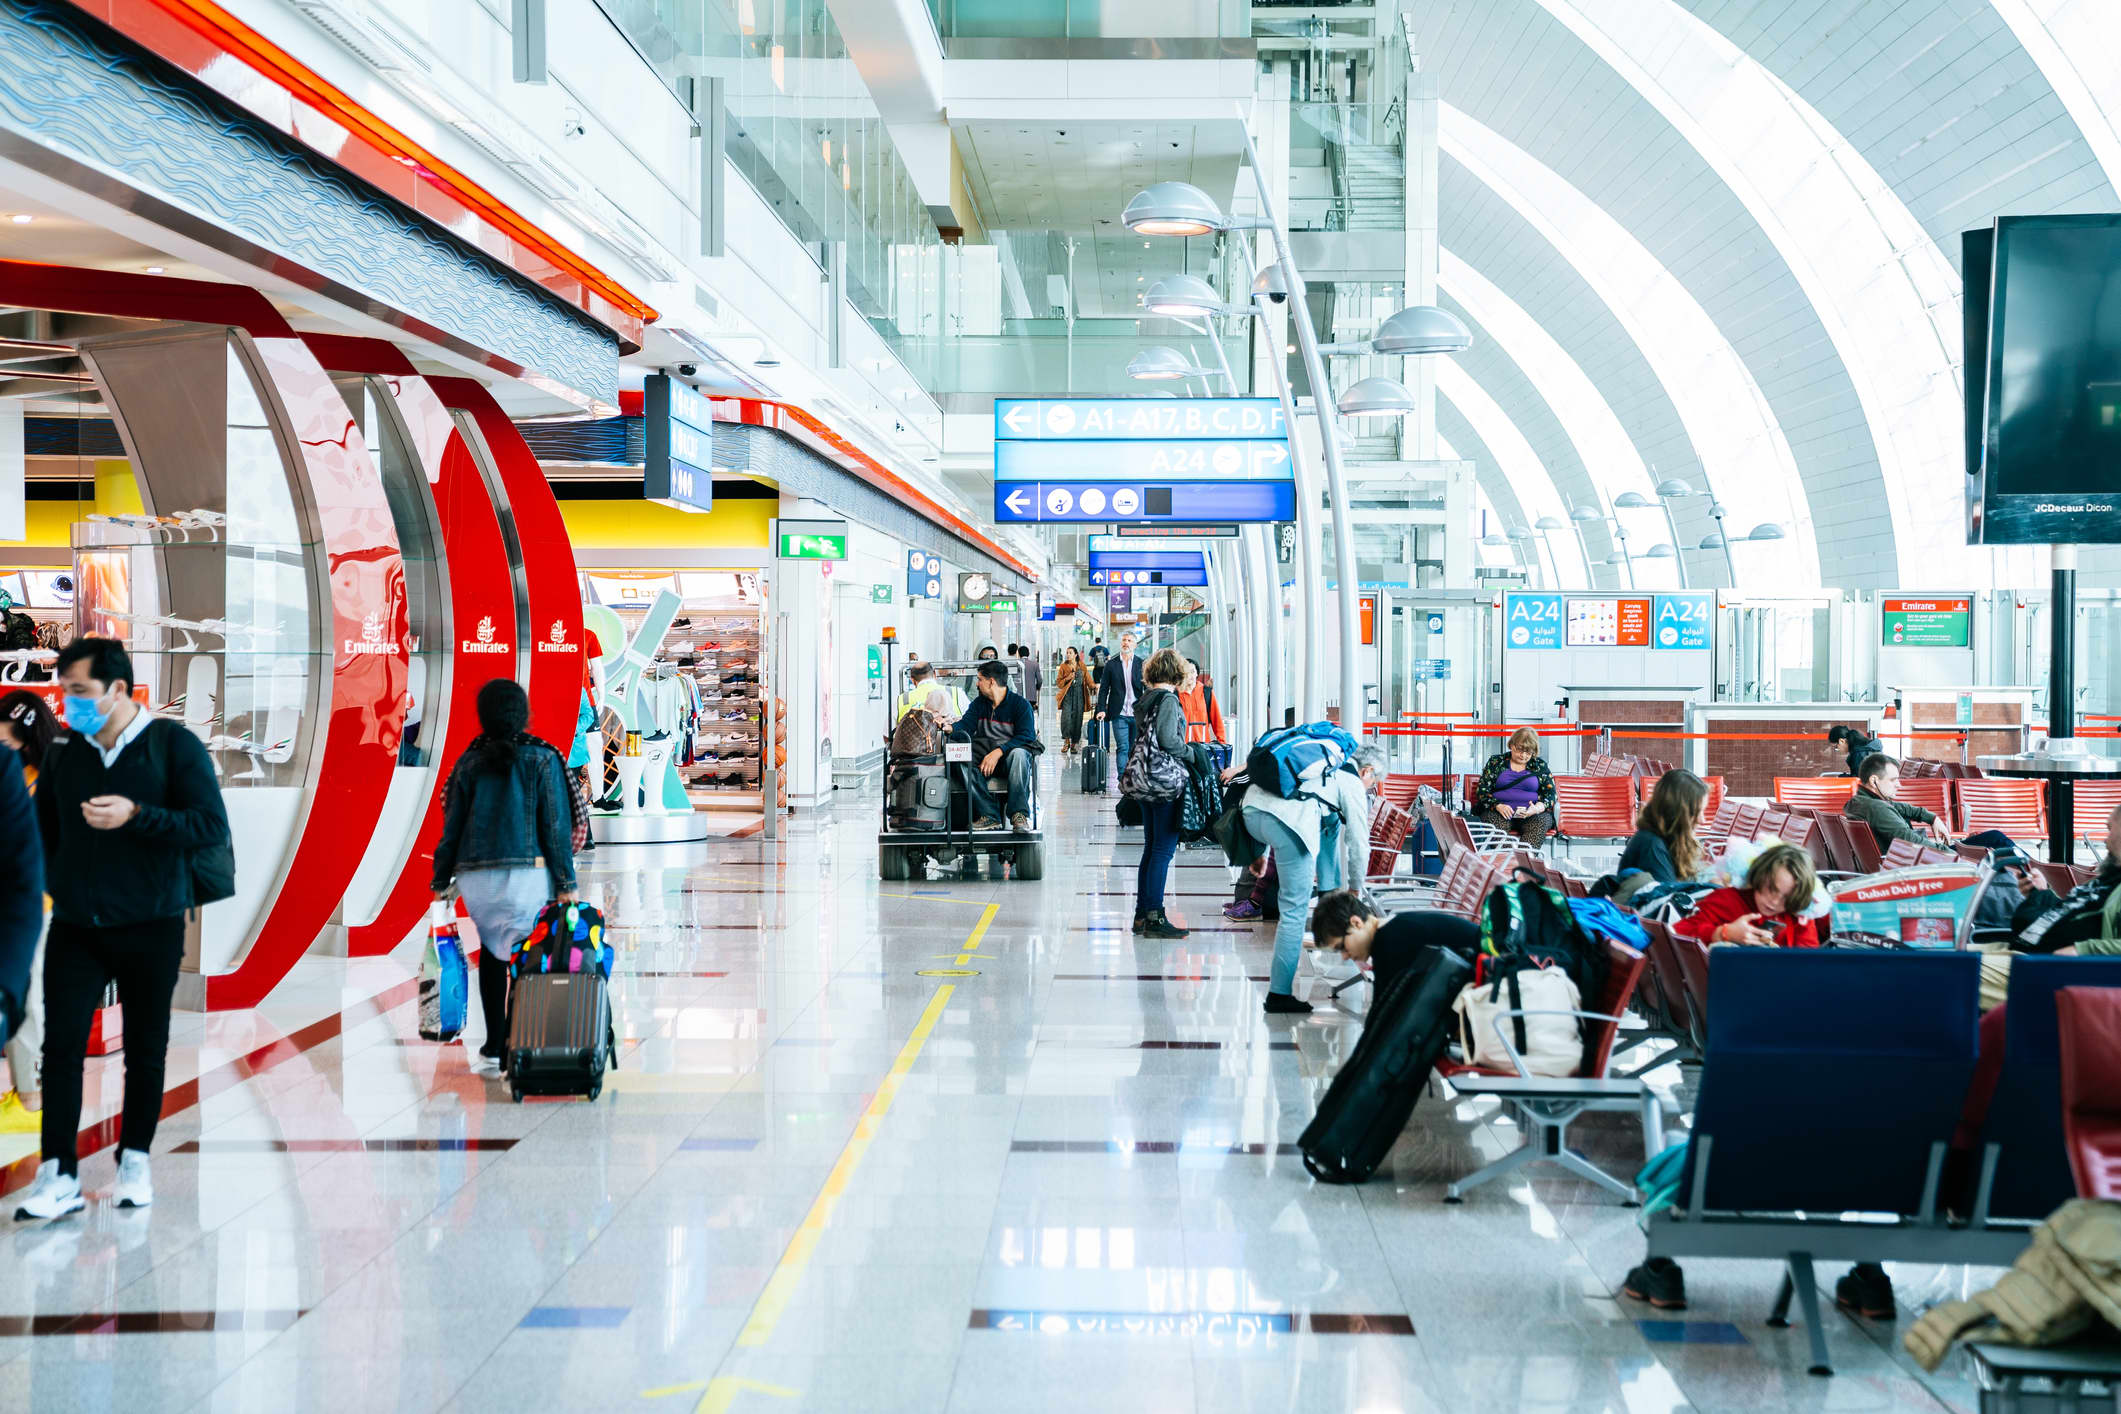 Dubai Airport's passenger numbers plunged 20% in the first quarter as coronavirus crushed travel